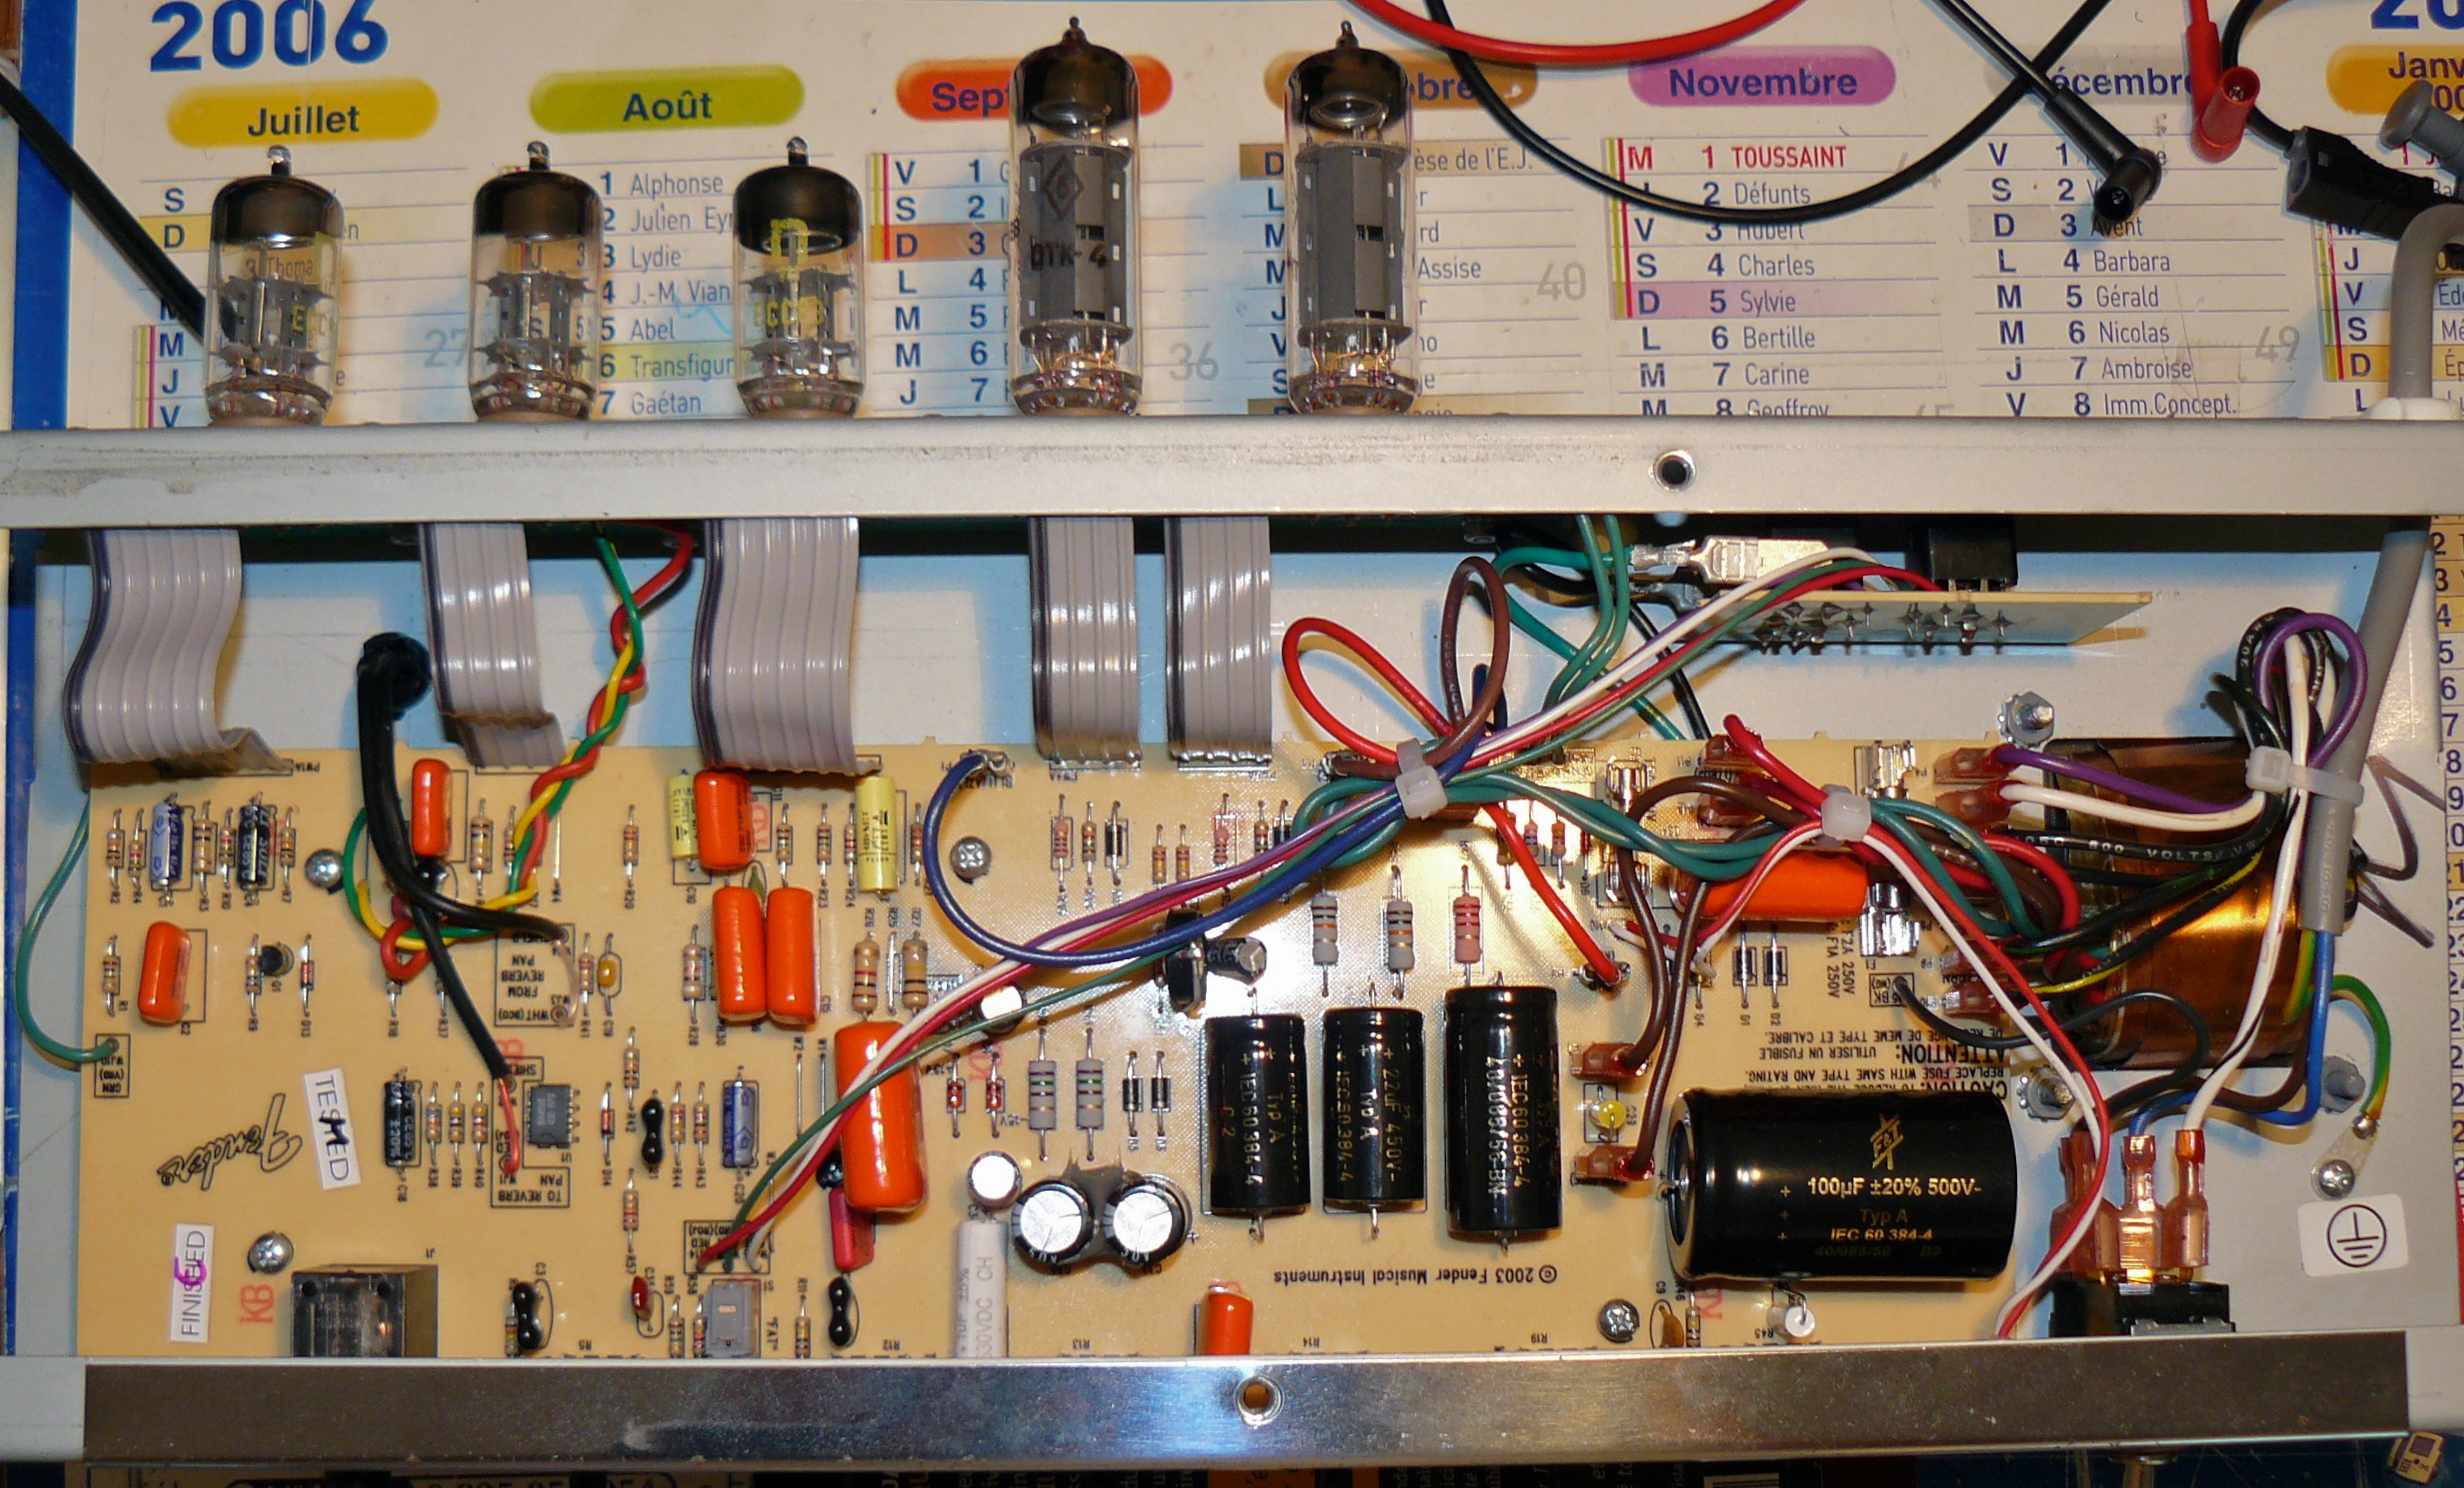 fender blues junior mods it 11 audio tonegeek rh tonegeek com Fender Support Wiring Diagrams fender blues junior iii circuit diagram